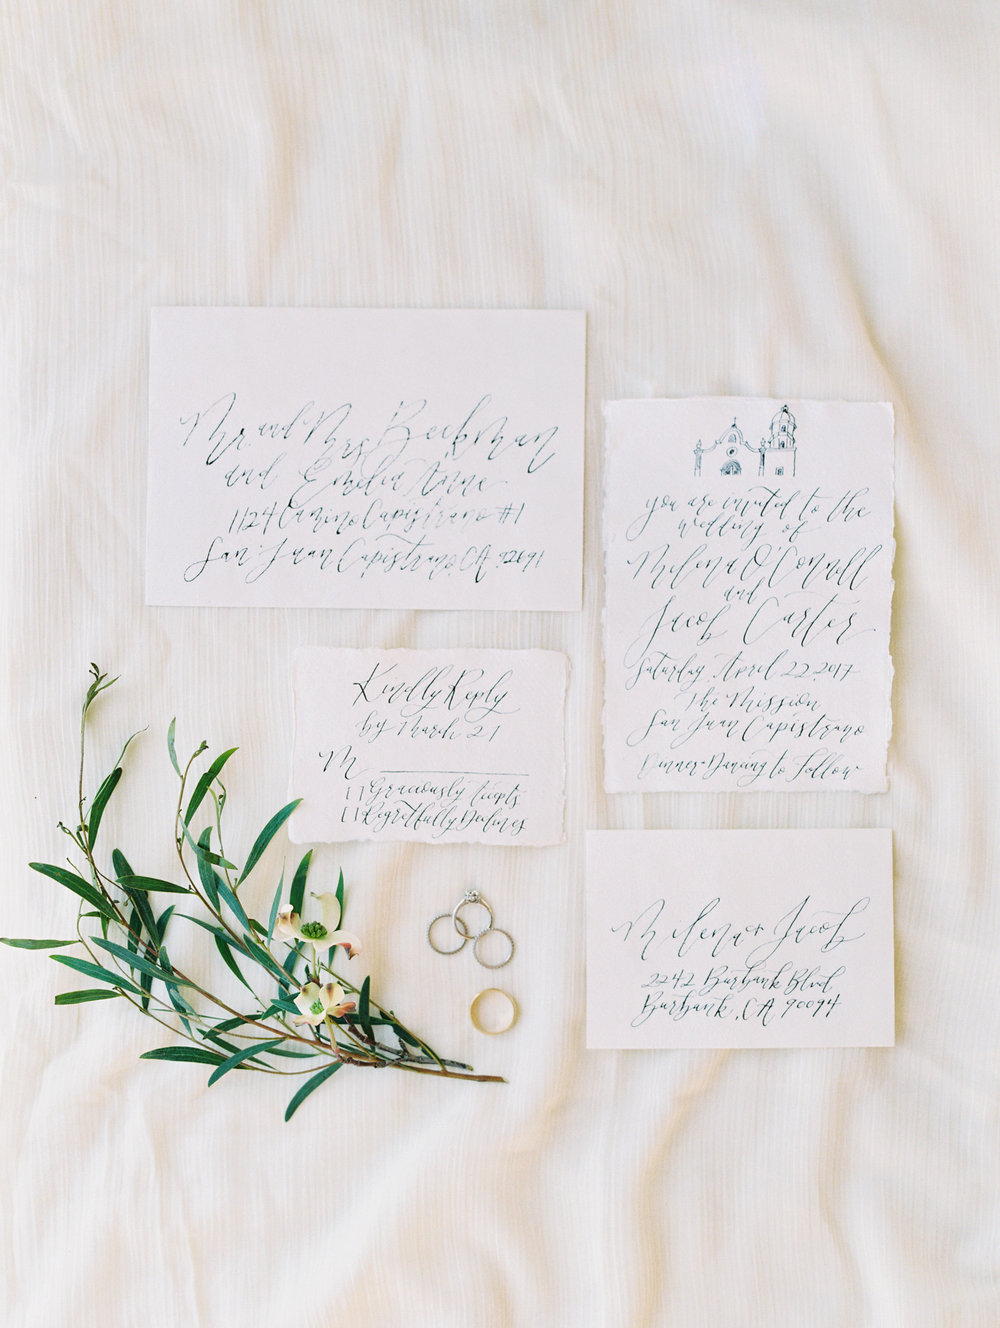 San Juan Elopement and Wedding | Mission San Juan Capistrano | Pirouette Paper Company | Calligraphy and Invitations  | Mallory Dawn Photo